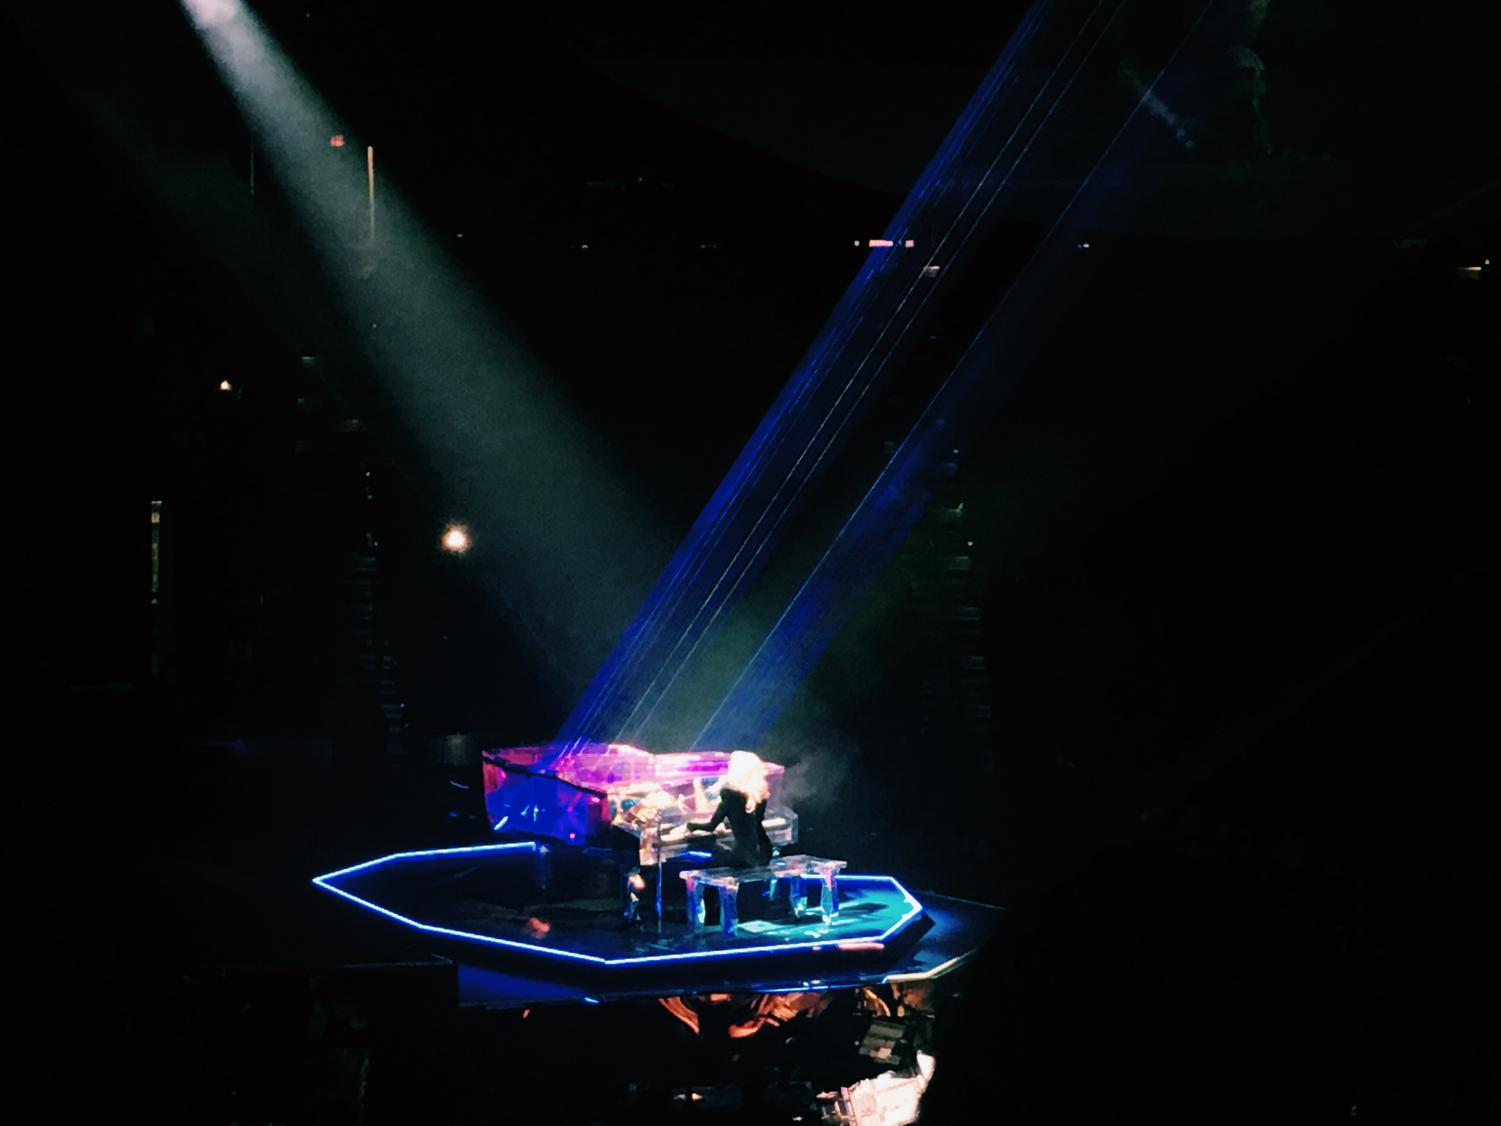 GaGa plays the piano during the concert